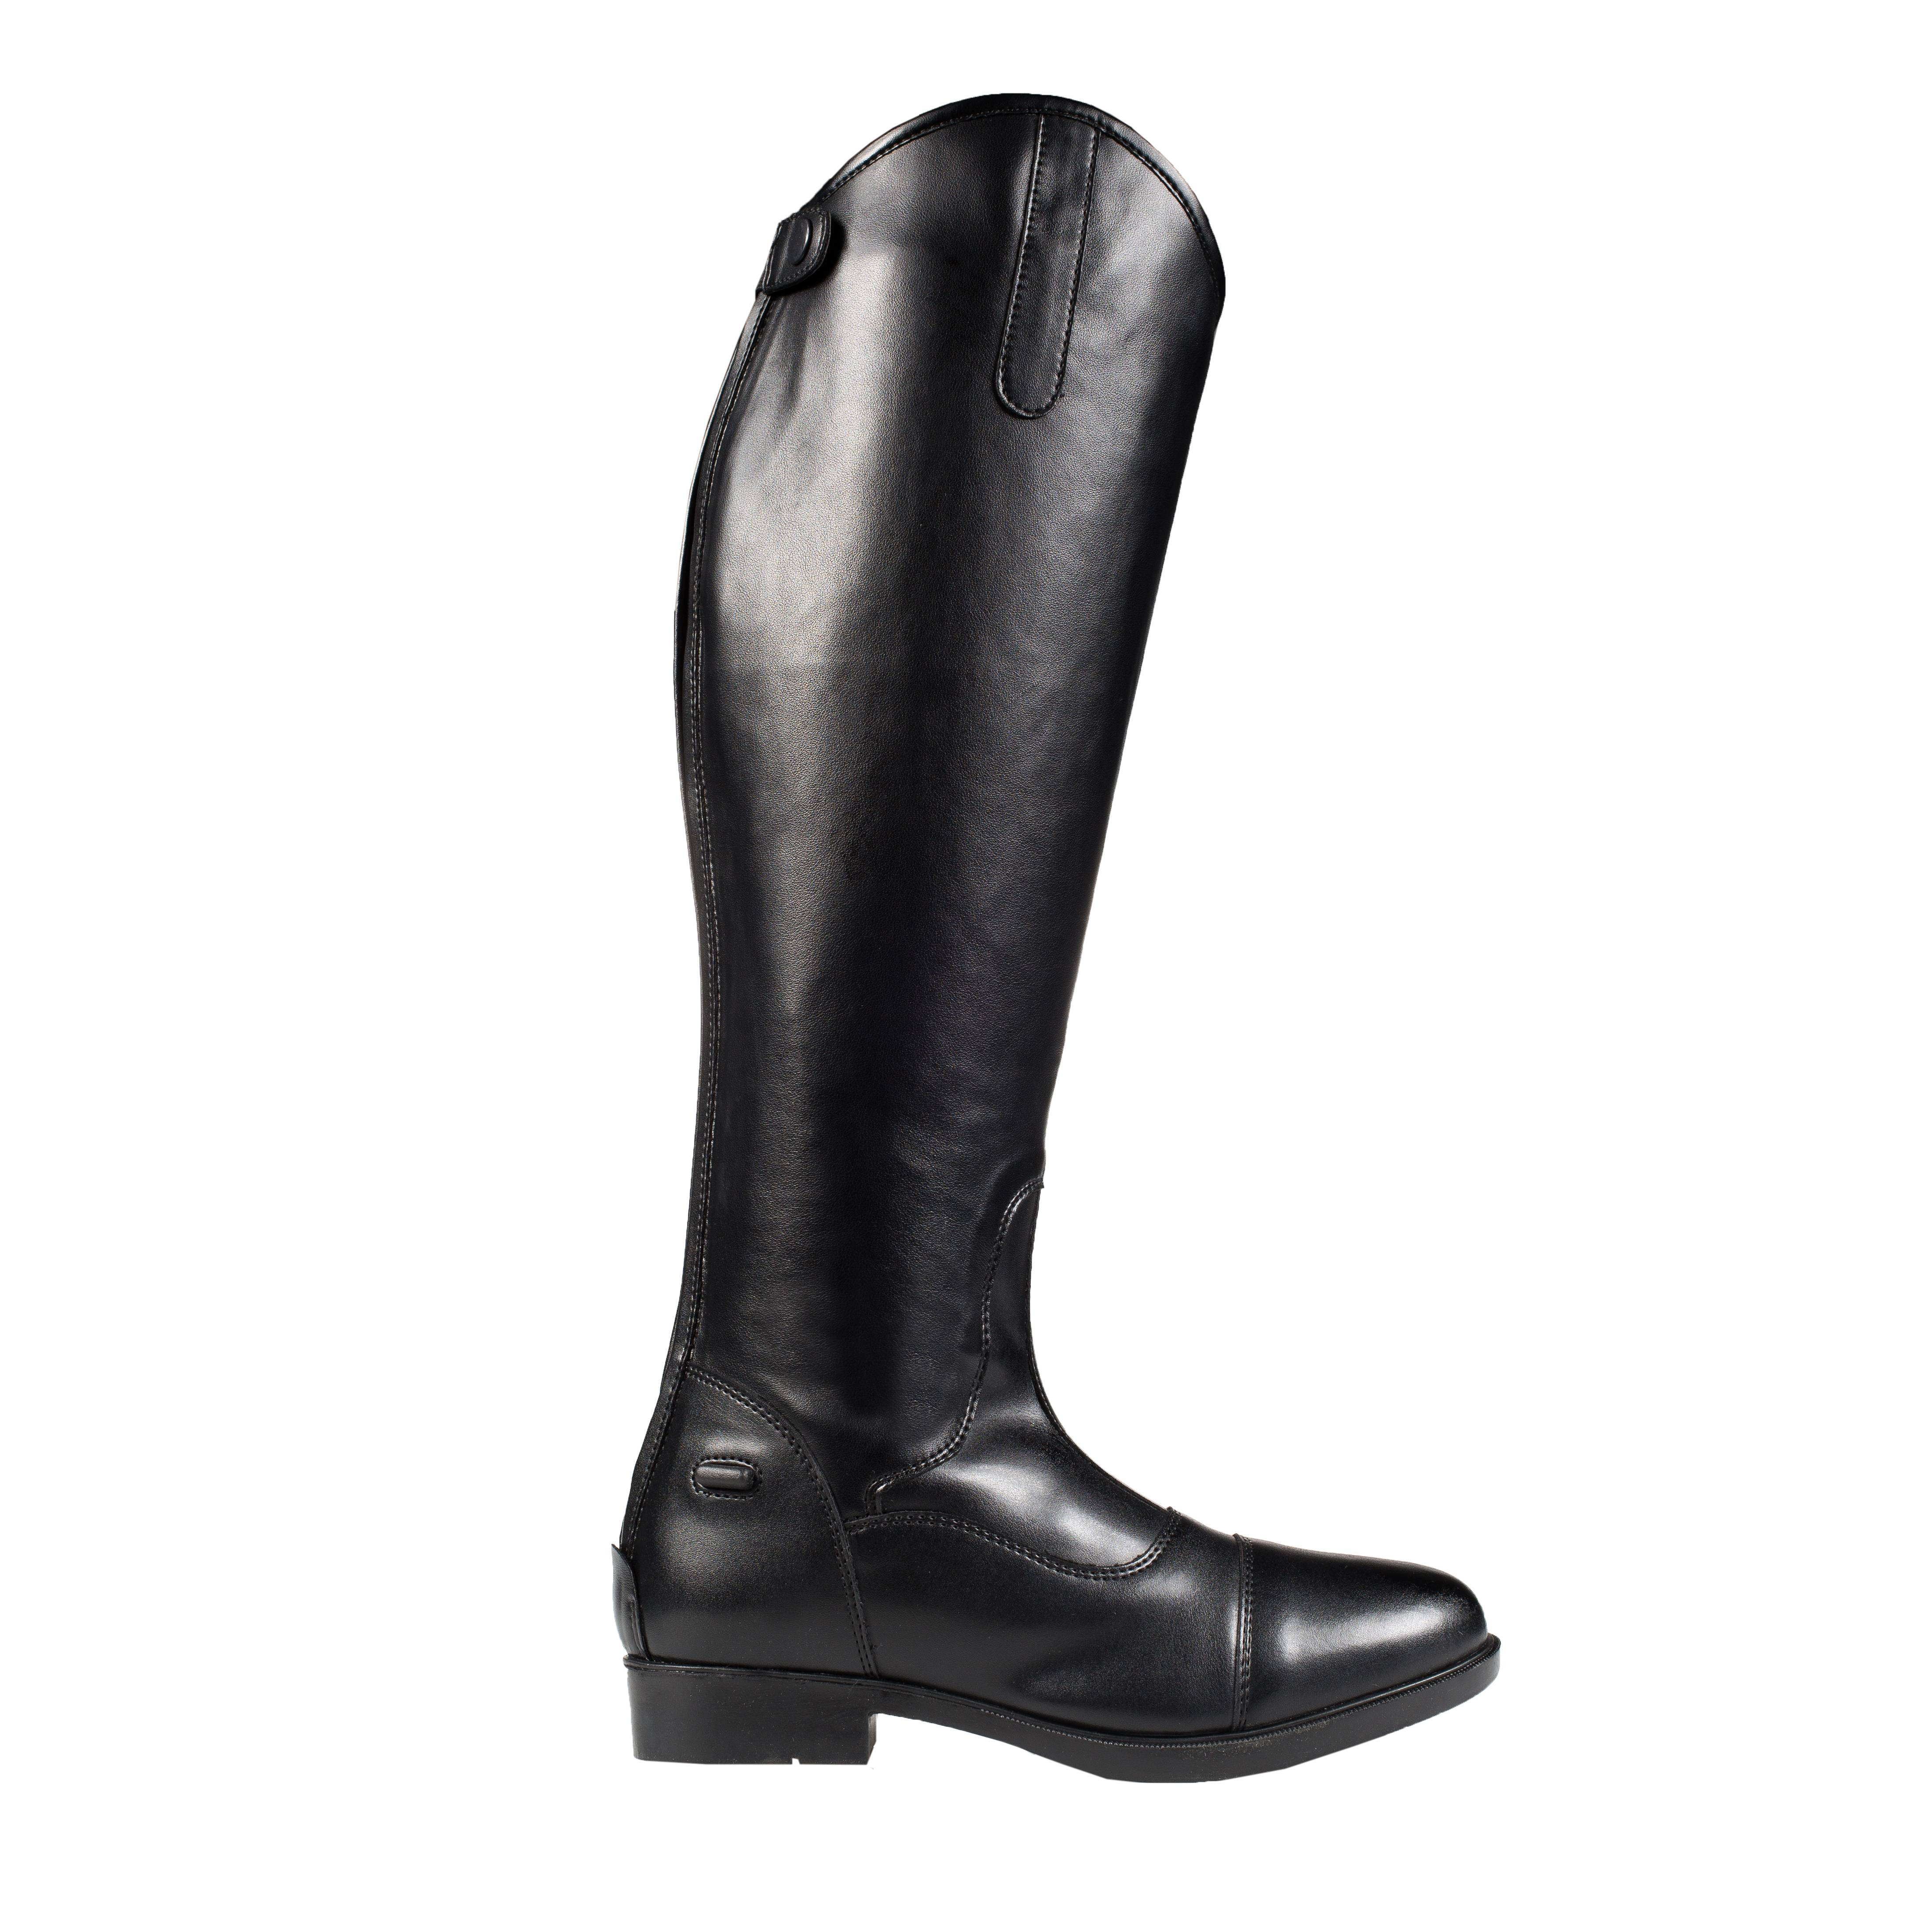 HorZe Spirit Rover Dressage Tall Boots - Ladies - Black